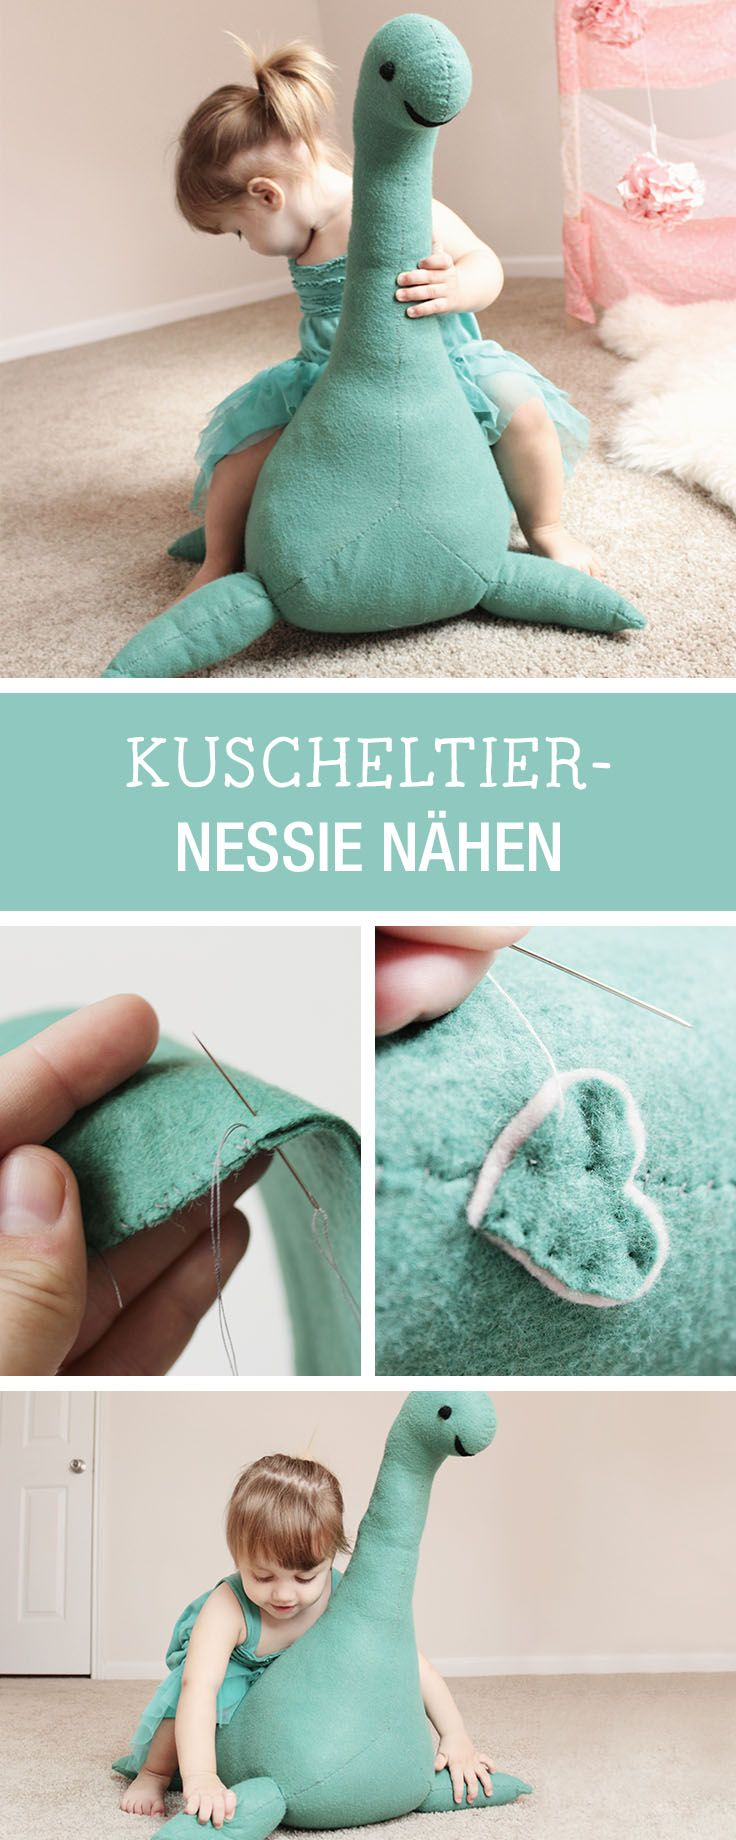 Nähanleitung für ein Kuscheltier: Nessie als großen Spielgefährten nähen / diy sewing tutorial and pattern: soft toy Nessie for the nursery via DaWanda.com